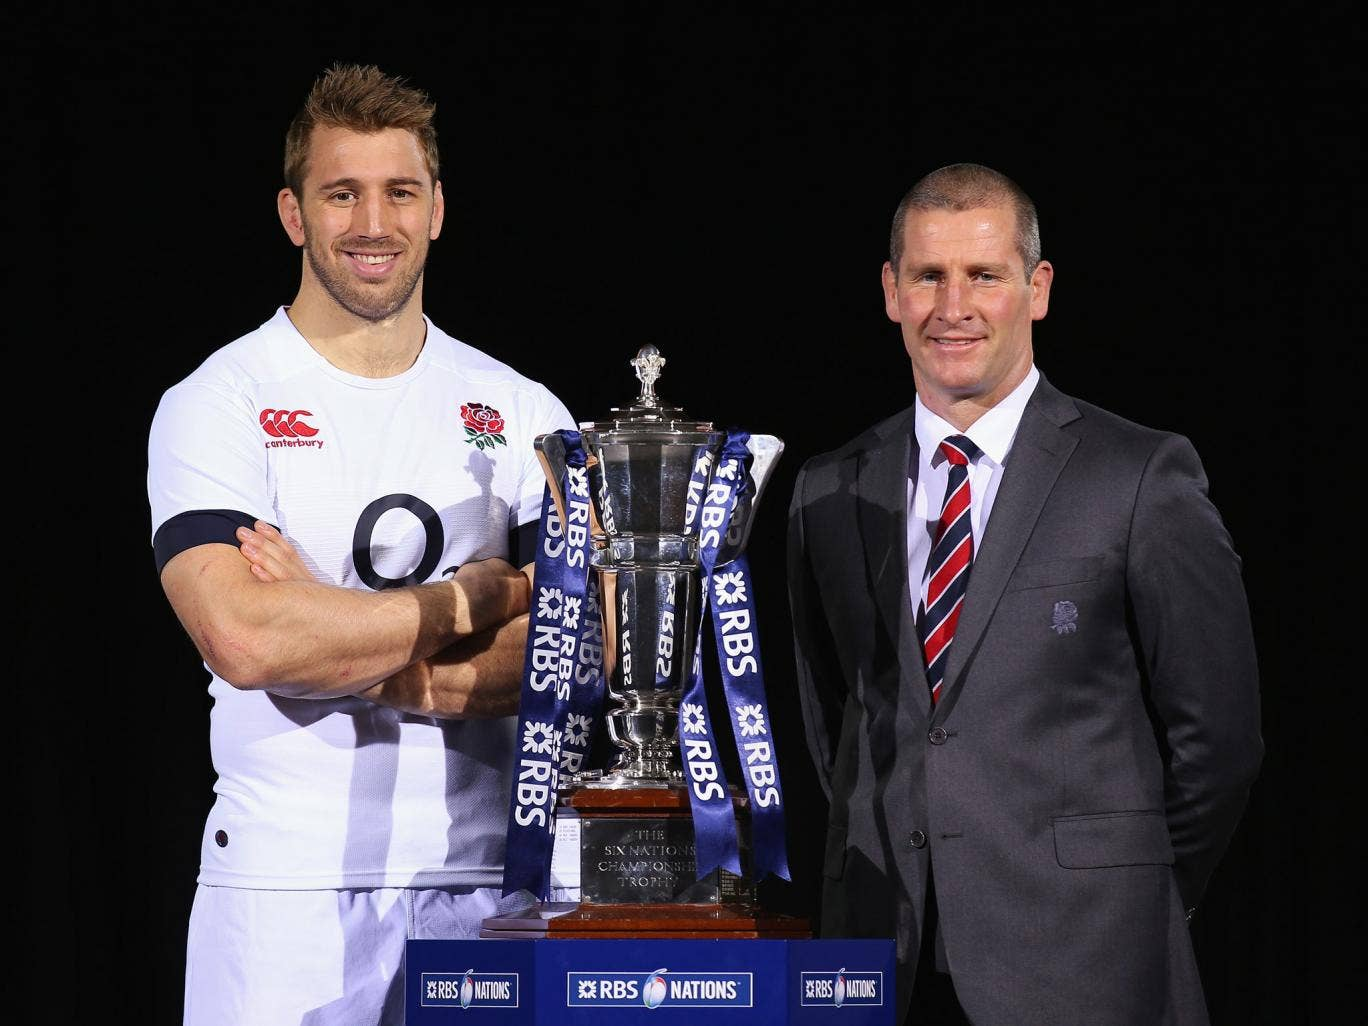 Chris Robshaw and Stuart Lancaster hope to guide England to Six Nations glory